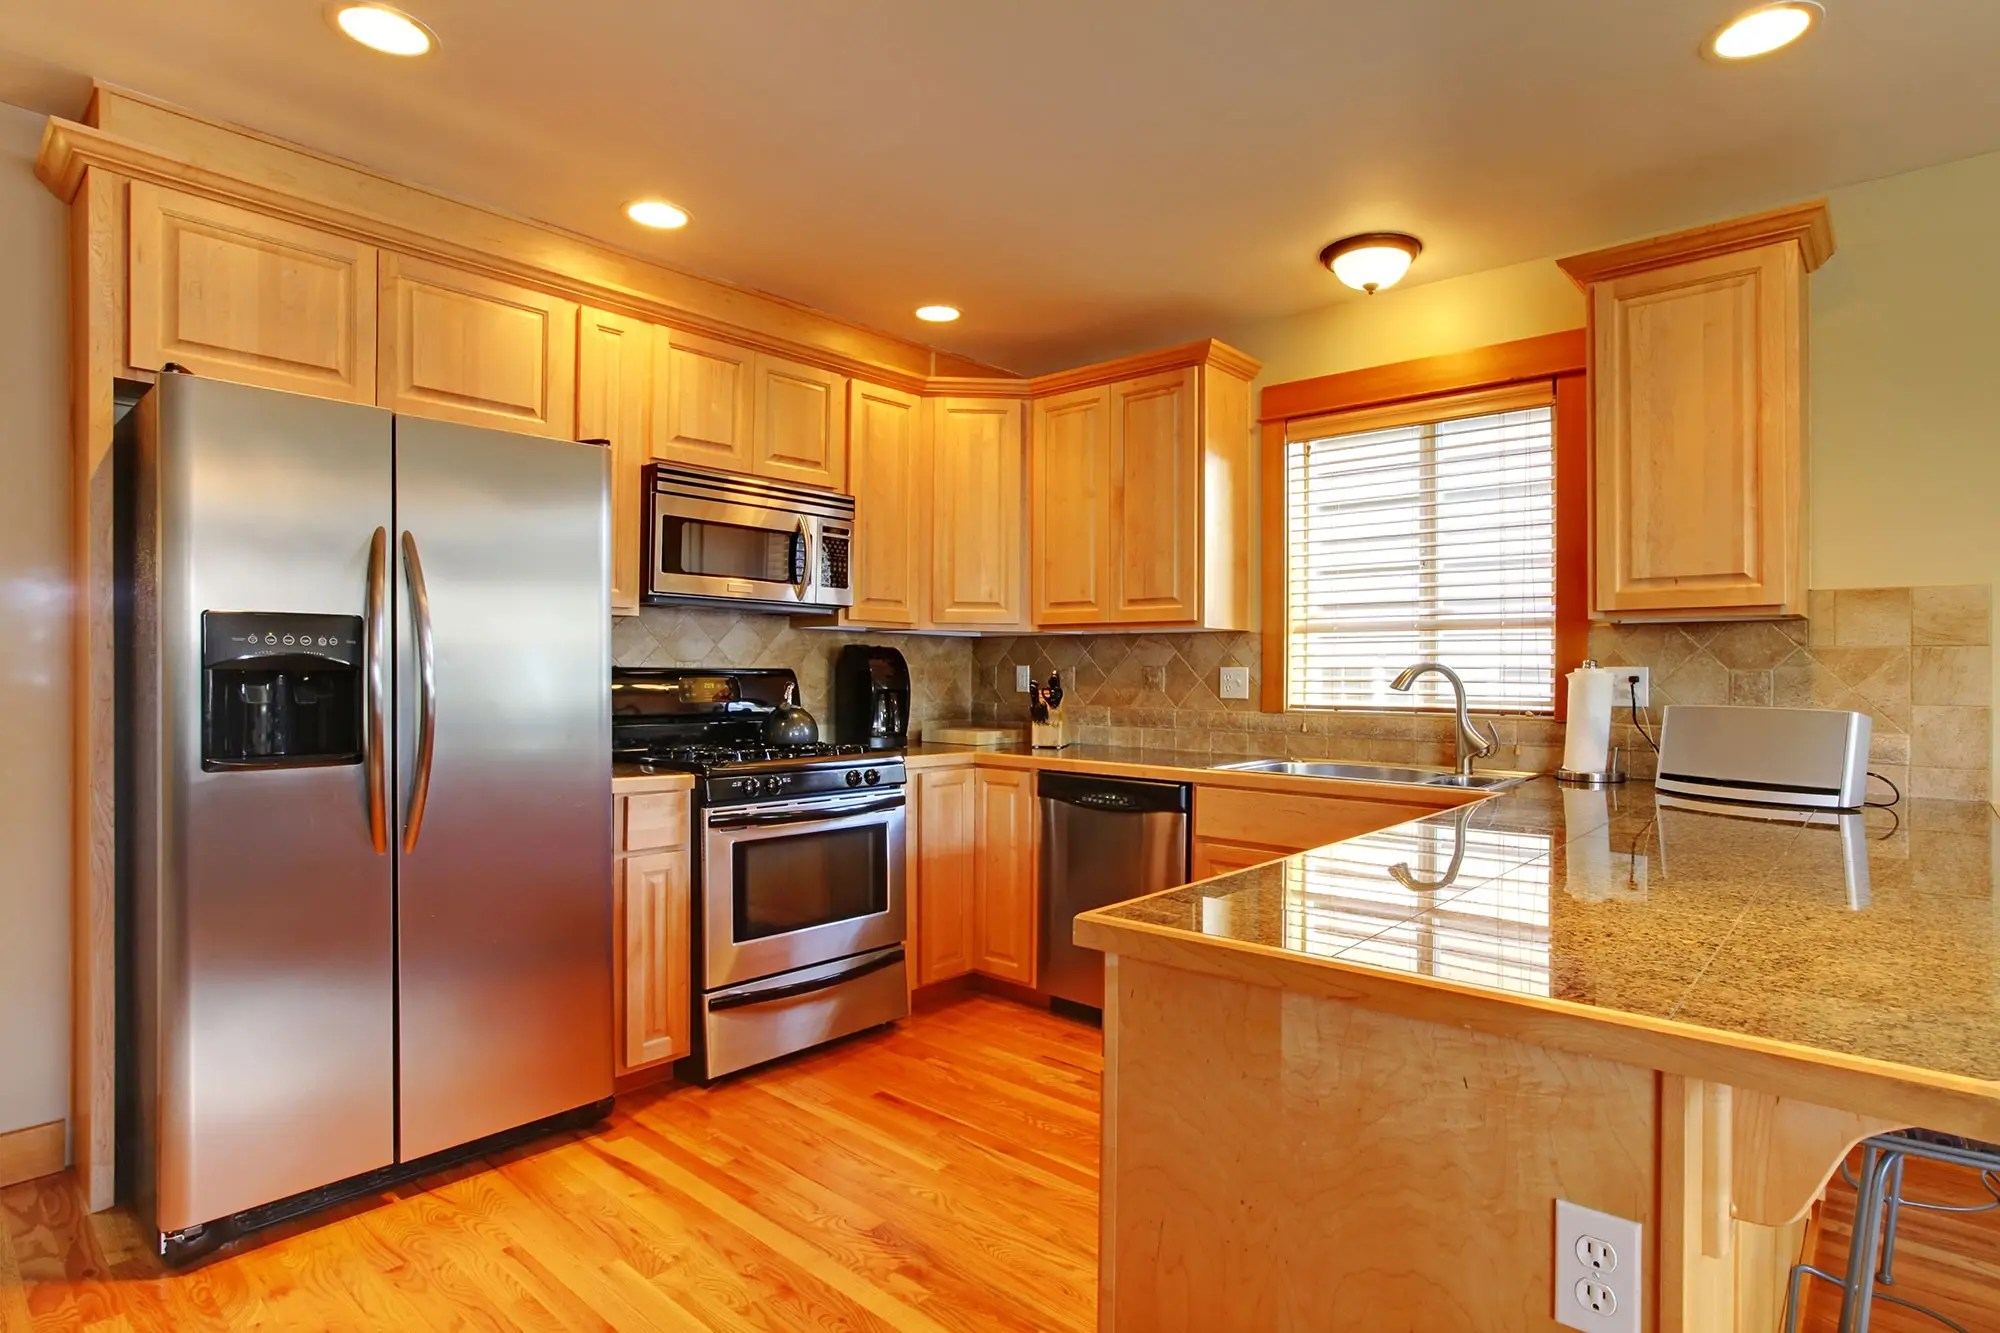 How to Know If You Need Appliance Repair Service for Your Refrigerator